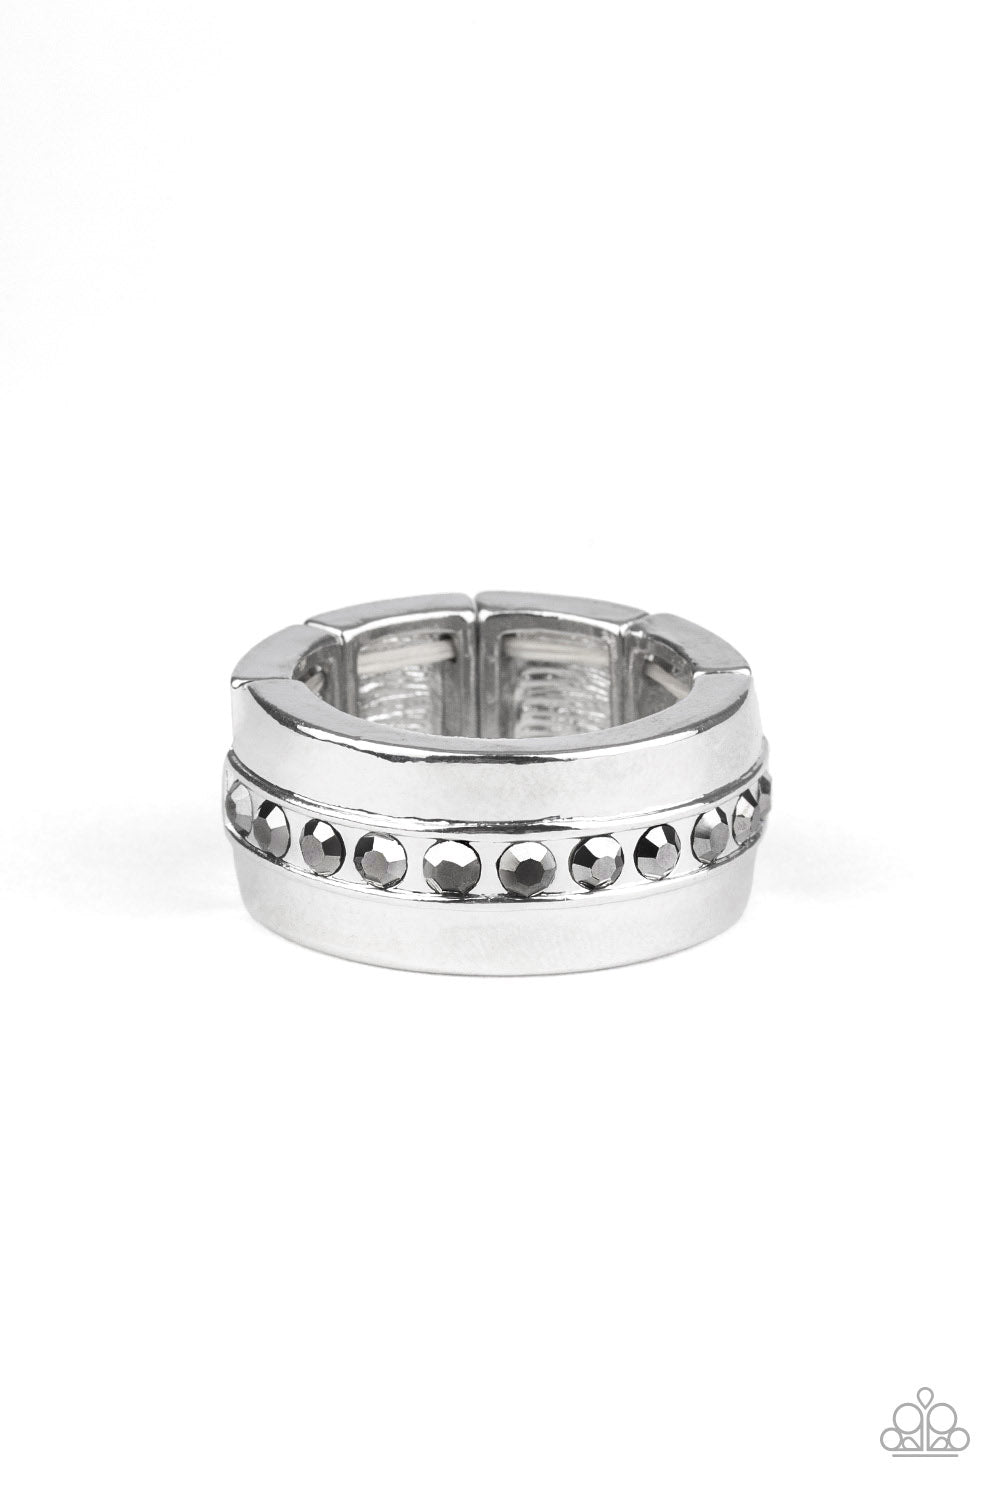 Paparazzi Ring ~ Reigning Champ - Silver